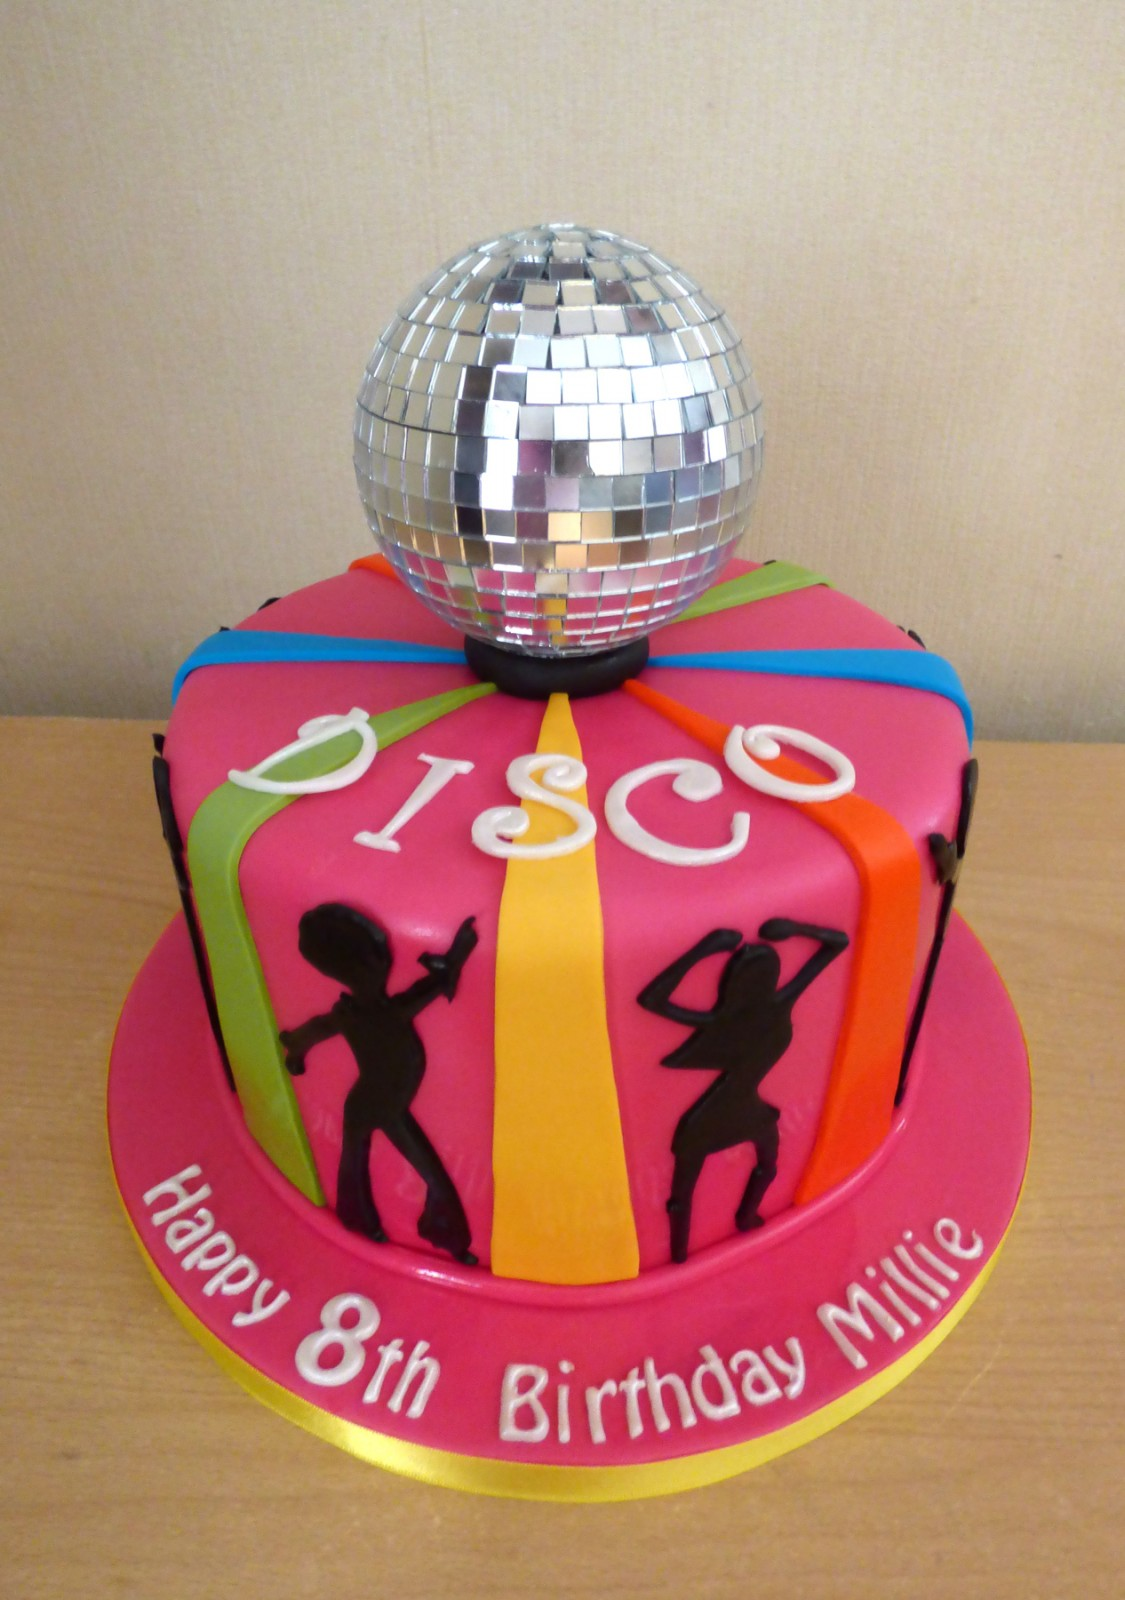 Disco Themed Birthday Cake With Glitter Ball 171 Susie S Cakes